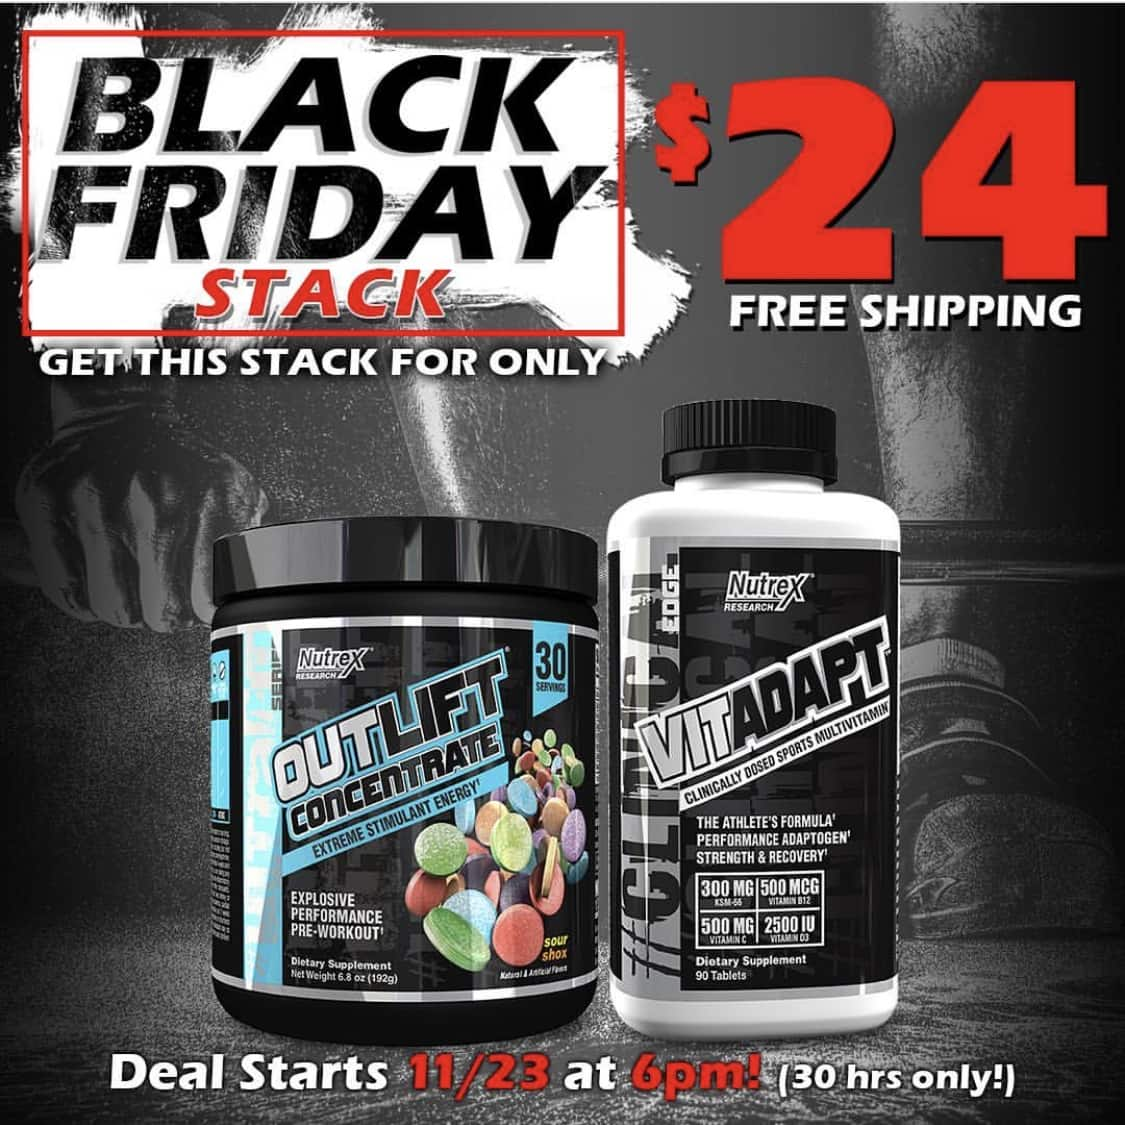 Nutrex Pre-Workout OUTLIFT Concentrate and Multivitamin VITADAPT $24 Plus Free Shipping